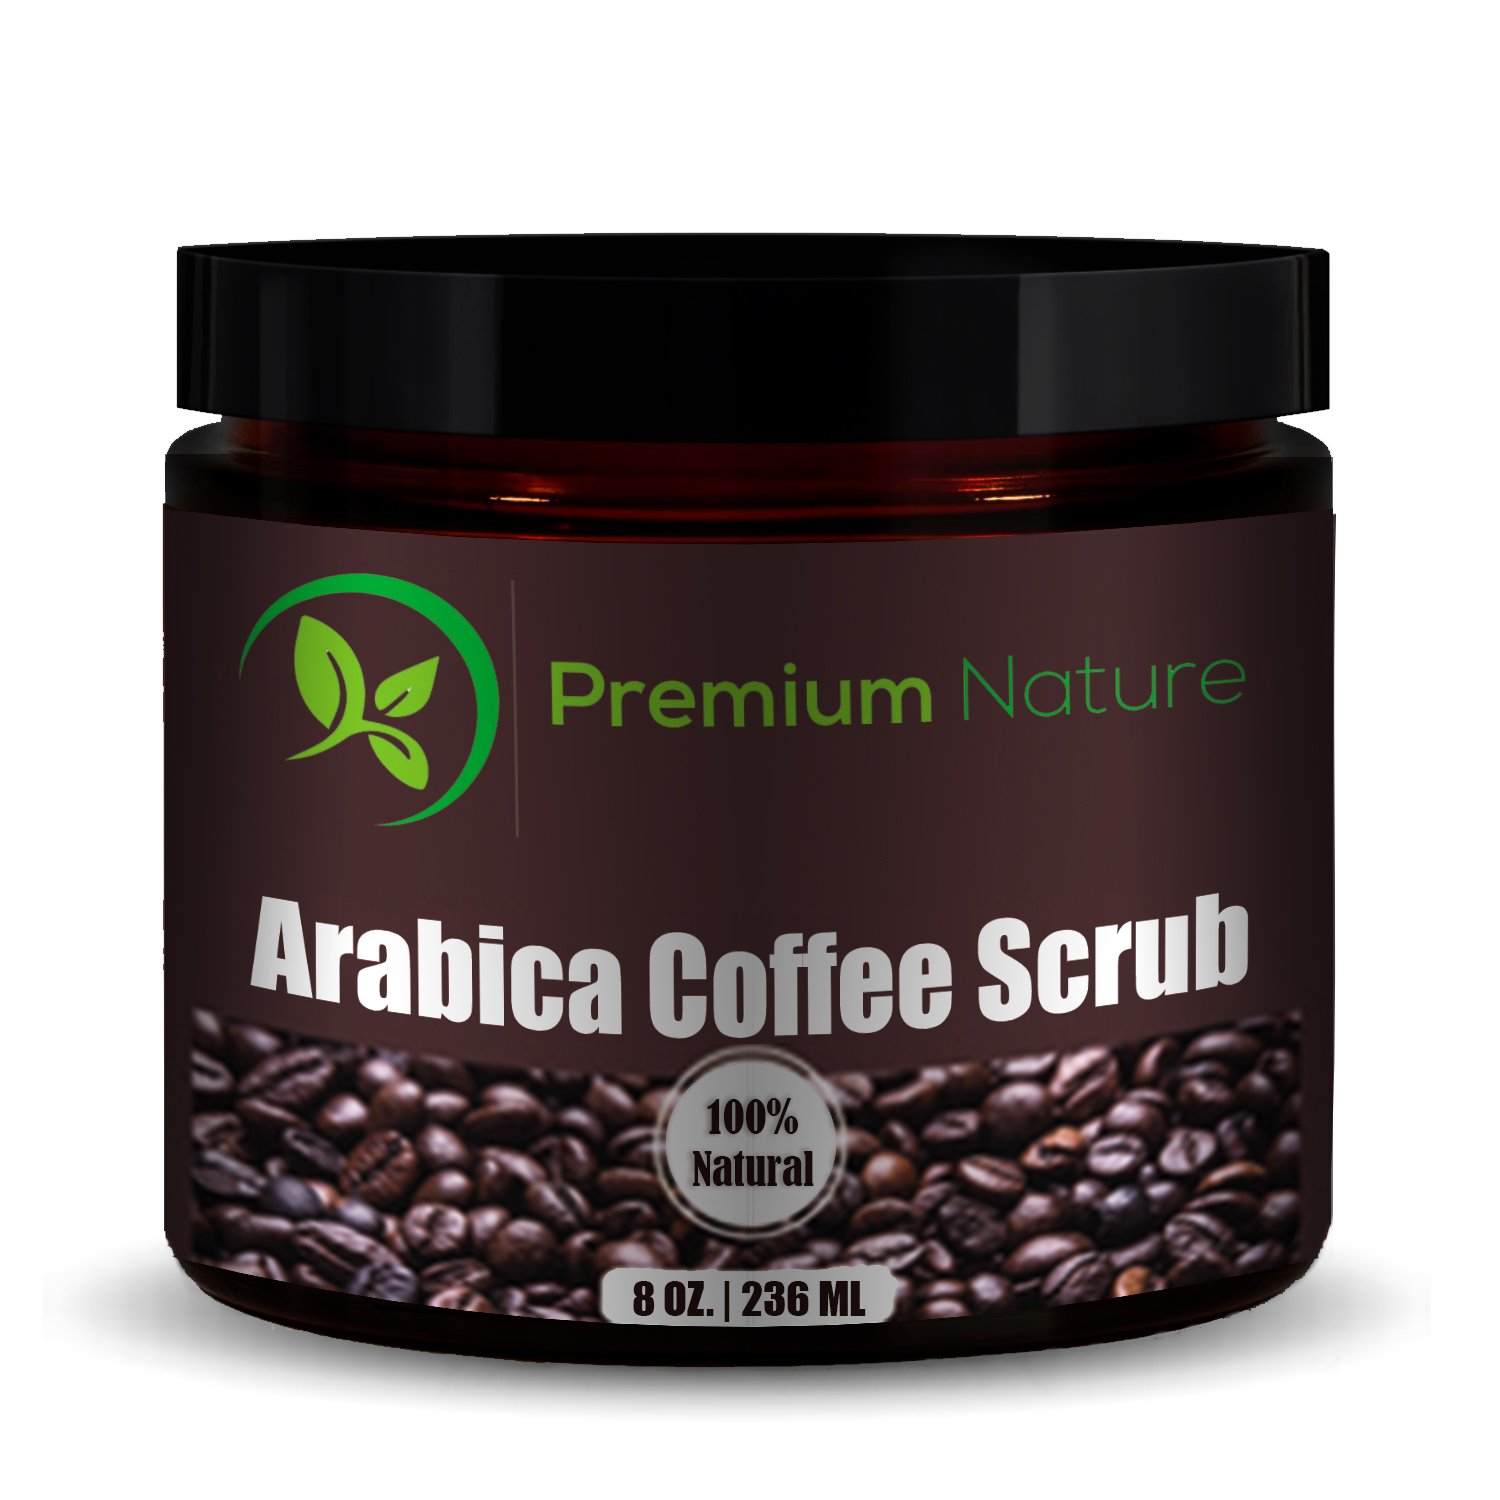 Premium Nature Natural Arabica Coffee Scrub, 8 oz